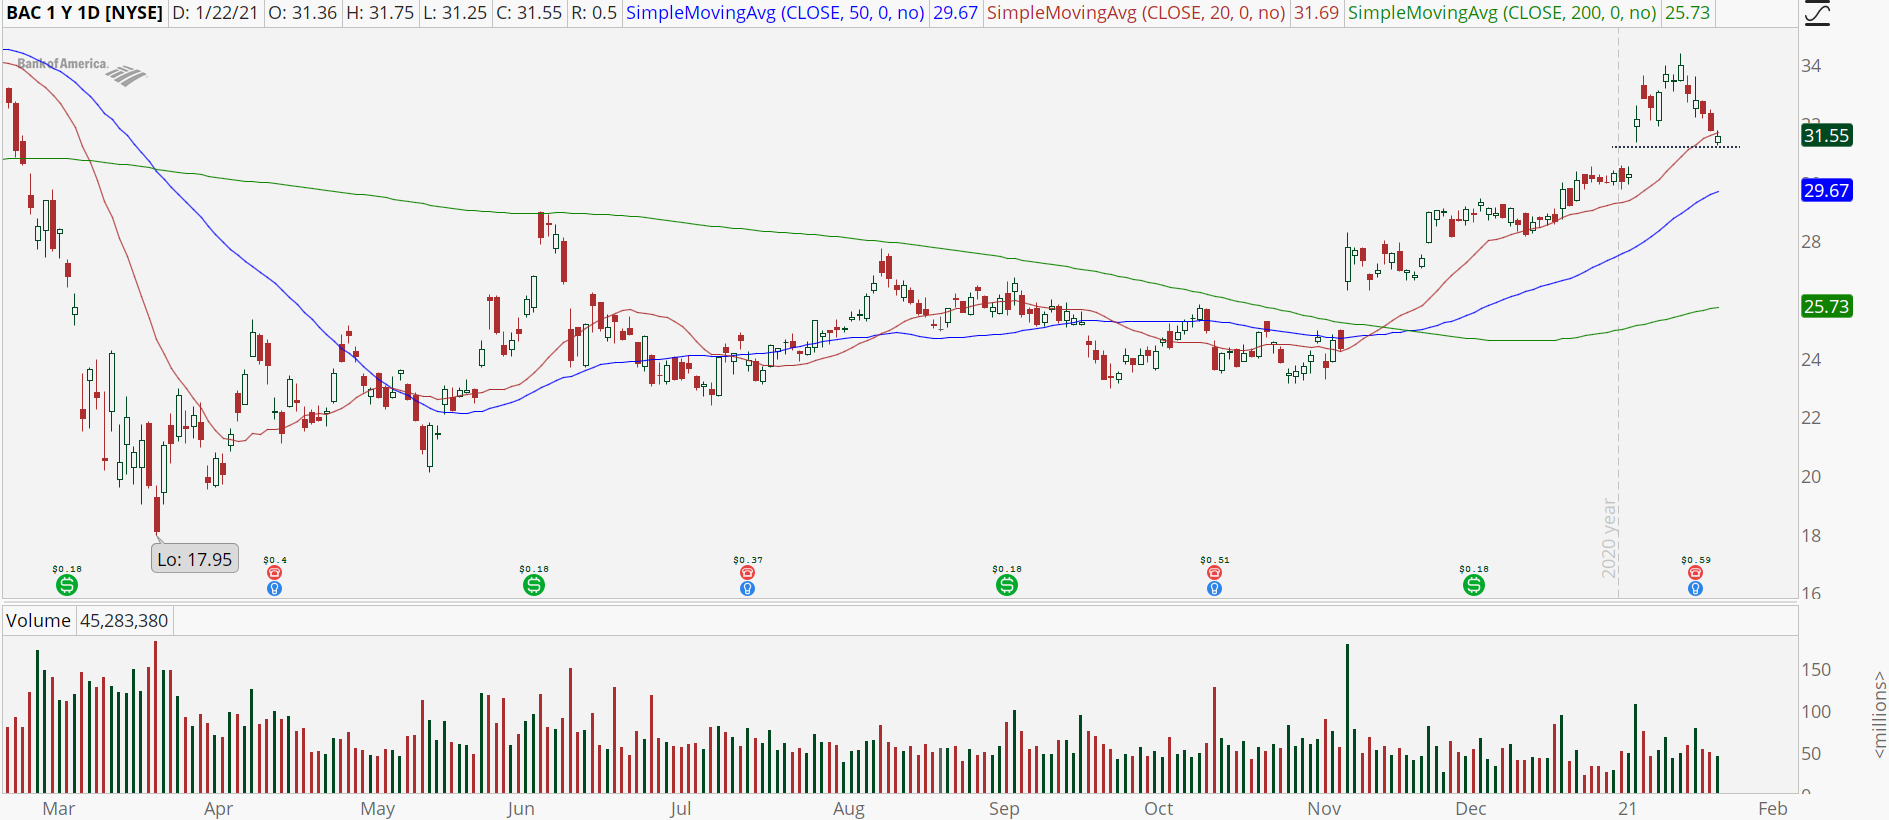 Bank of America (BAC) stock chart with bull retracement pattern